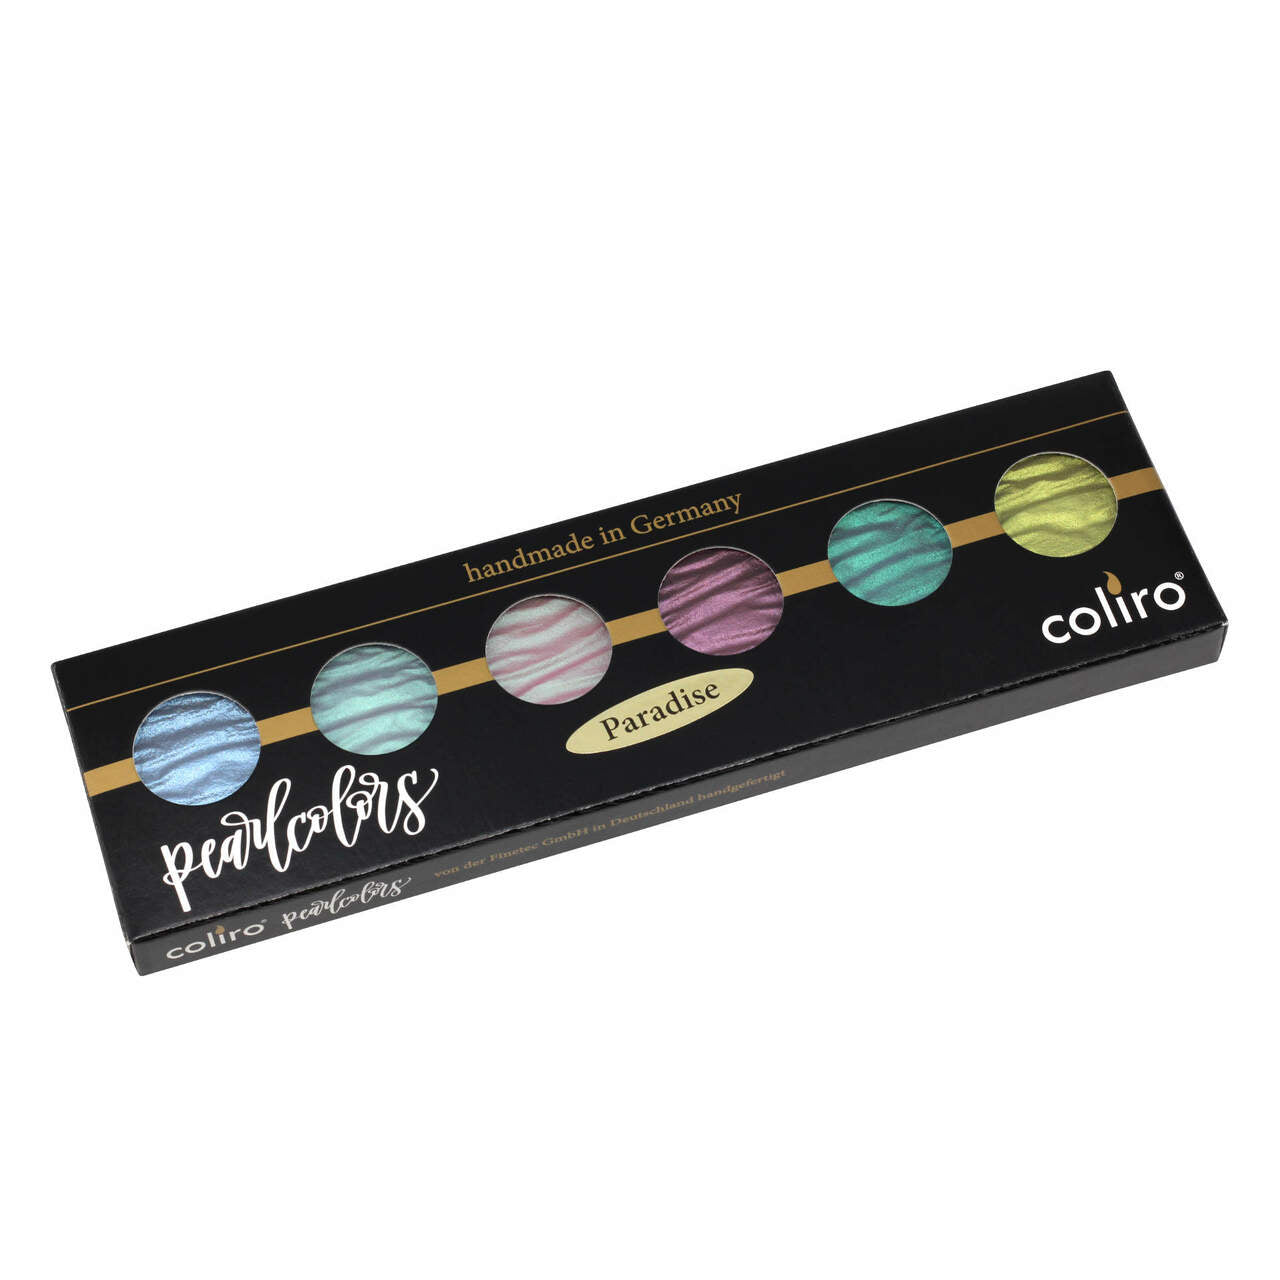 Coliro Pearlcolors Watercolors are handmade in Germany using natural mica to create a unique finish.